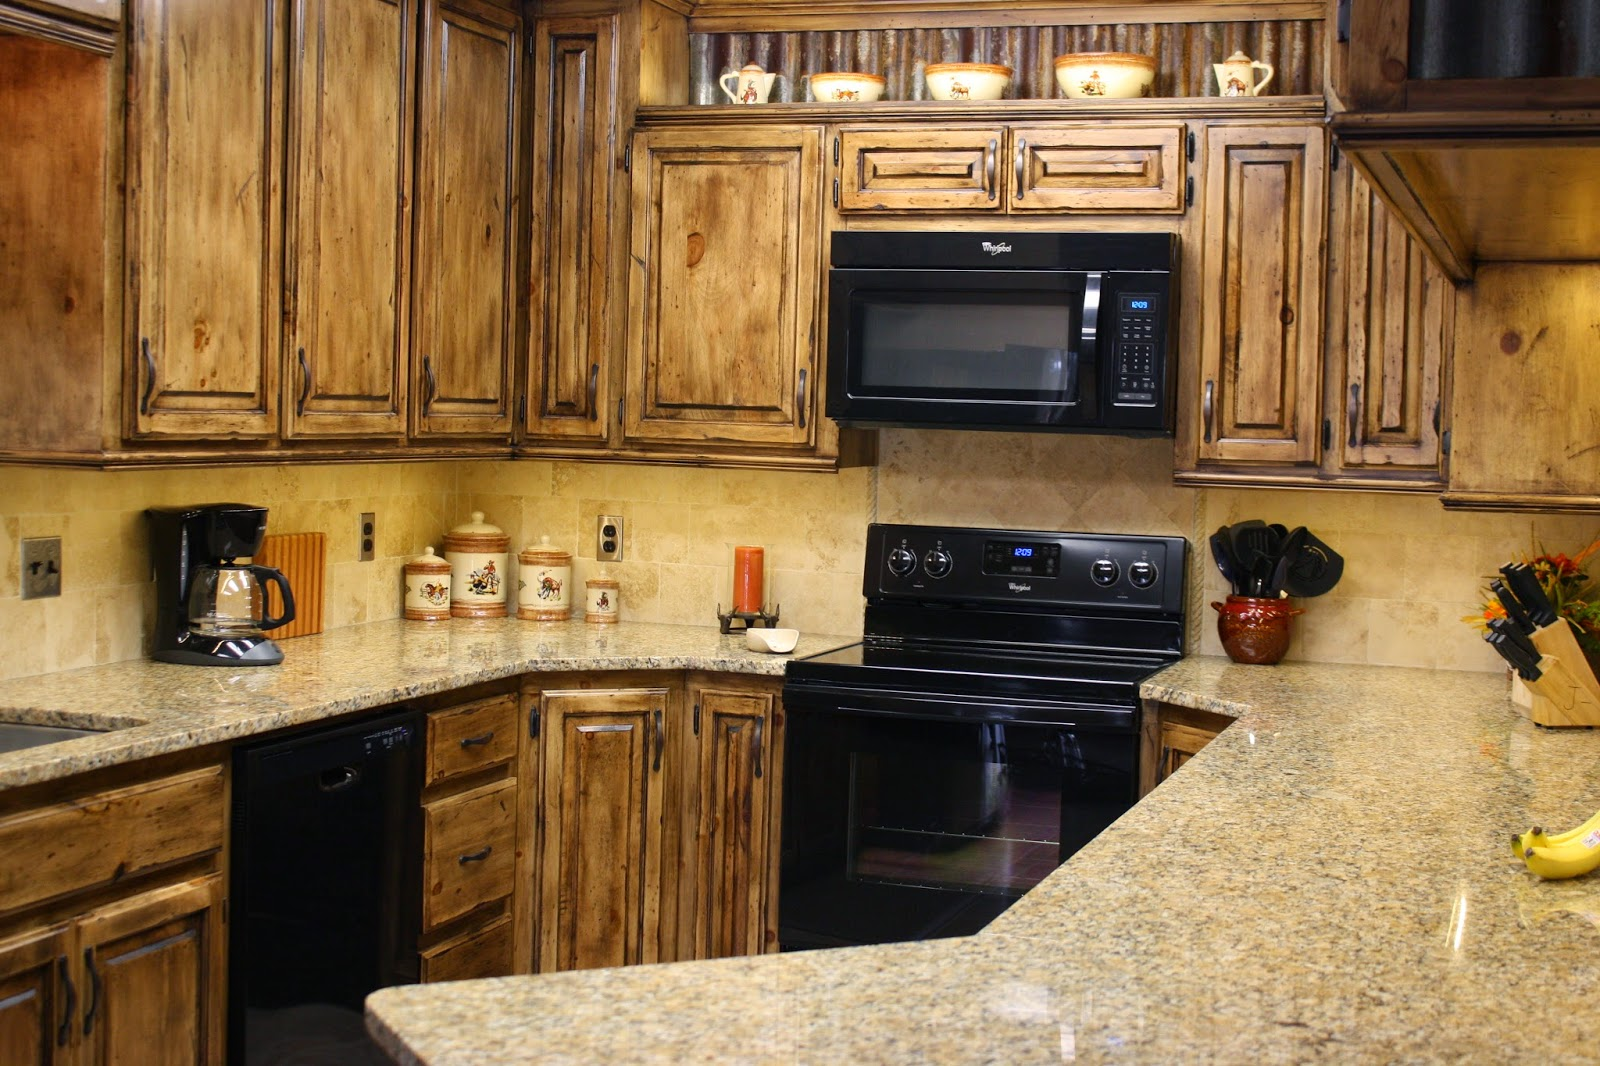 Kitchen Cabinets Made In Usa 4 Piece Faucet Rta